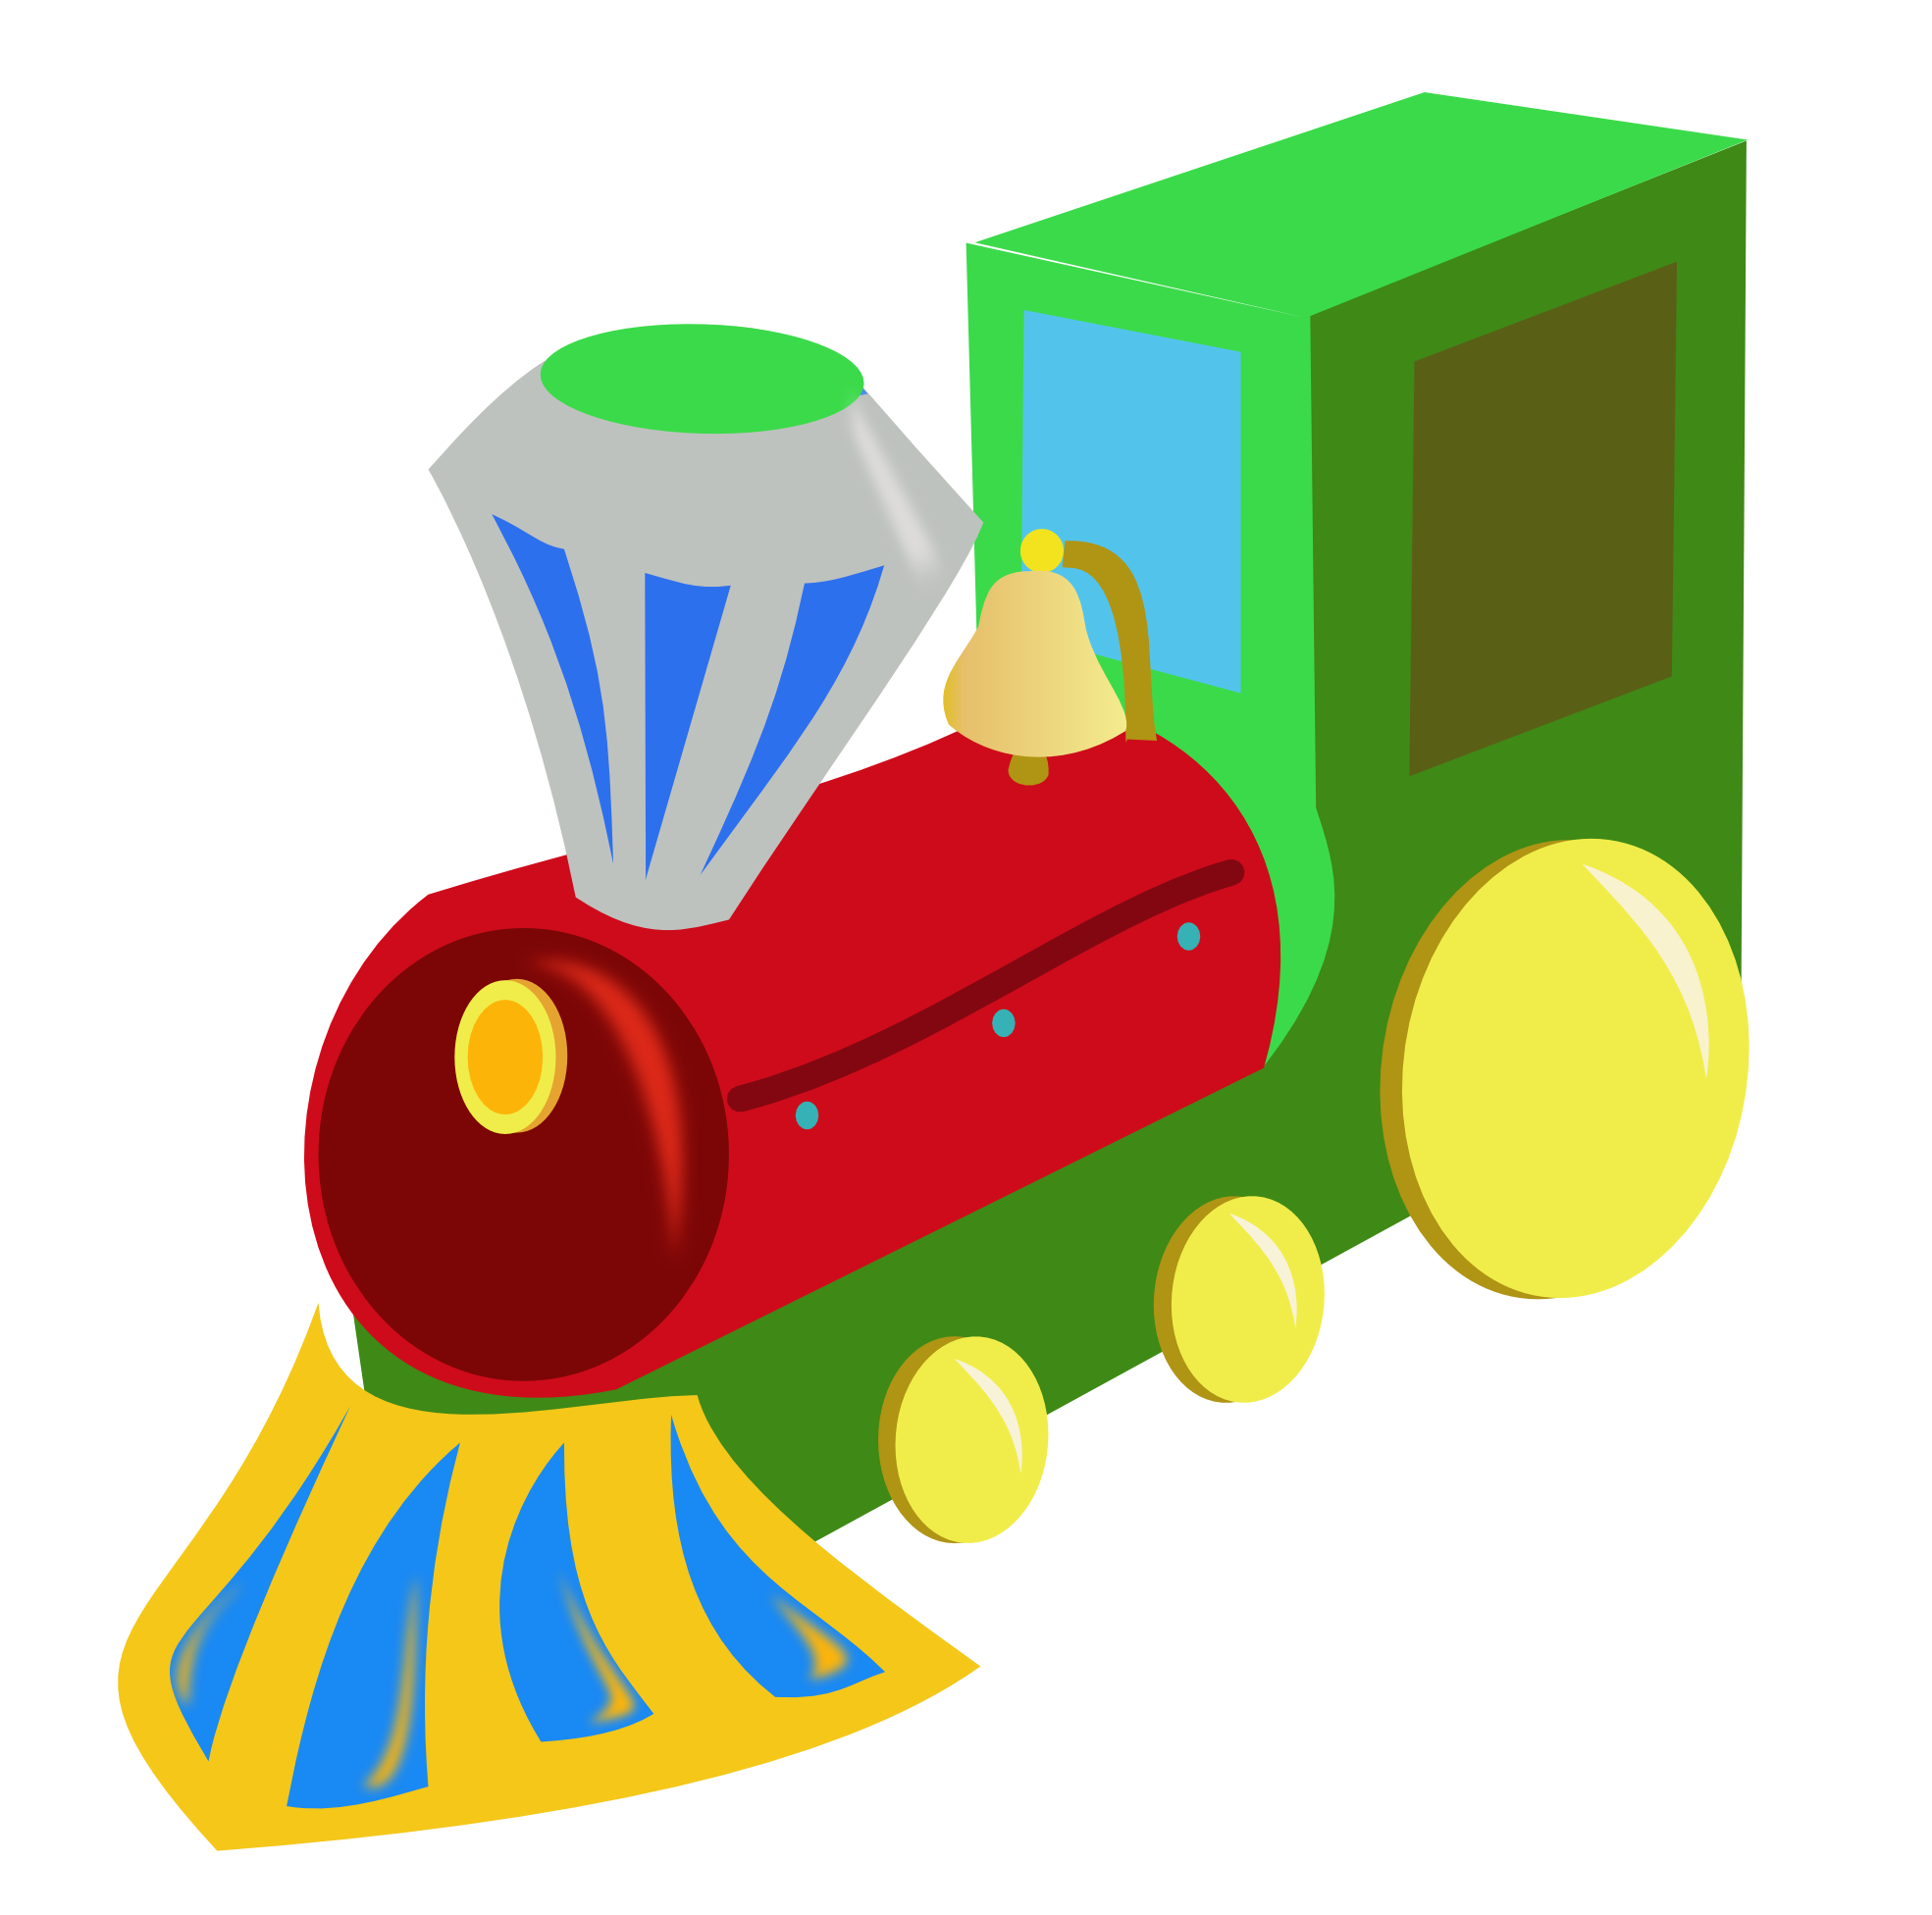 Toy train png. Download free icons and